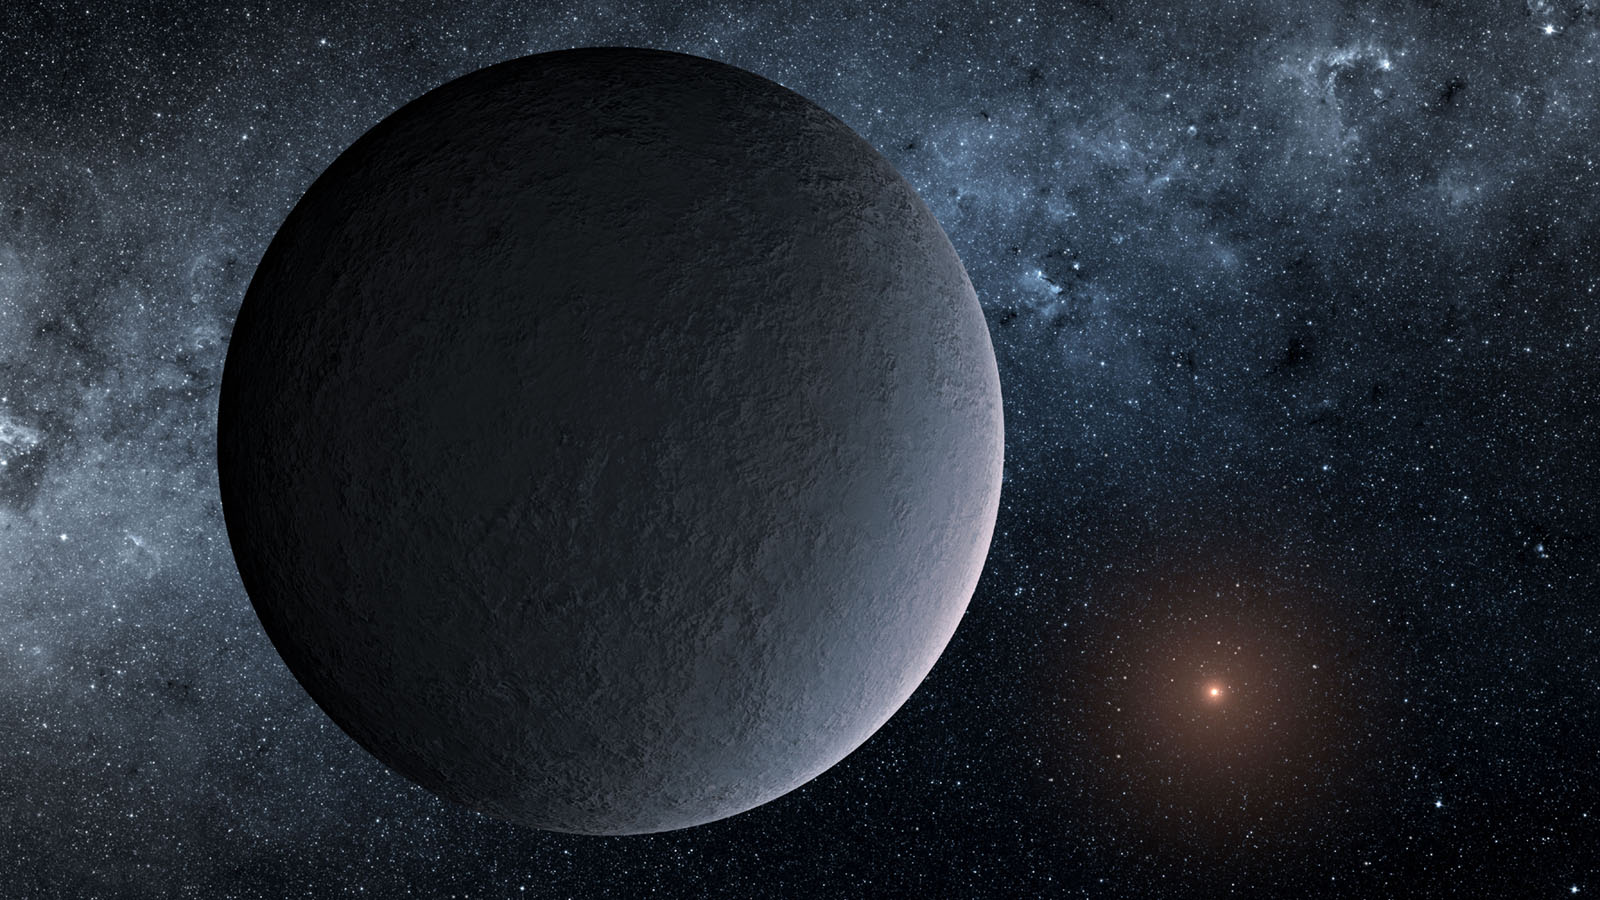 This artist's concept shows OGLE-2016-BLG-1195Lb, a planet discovered through a technique called microlensing used by NASA's Spitzer Space Telescope.